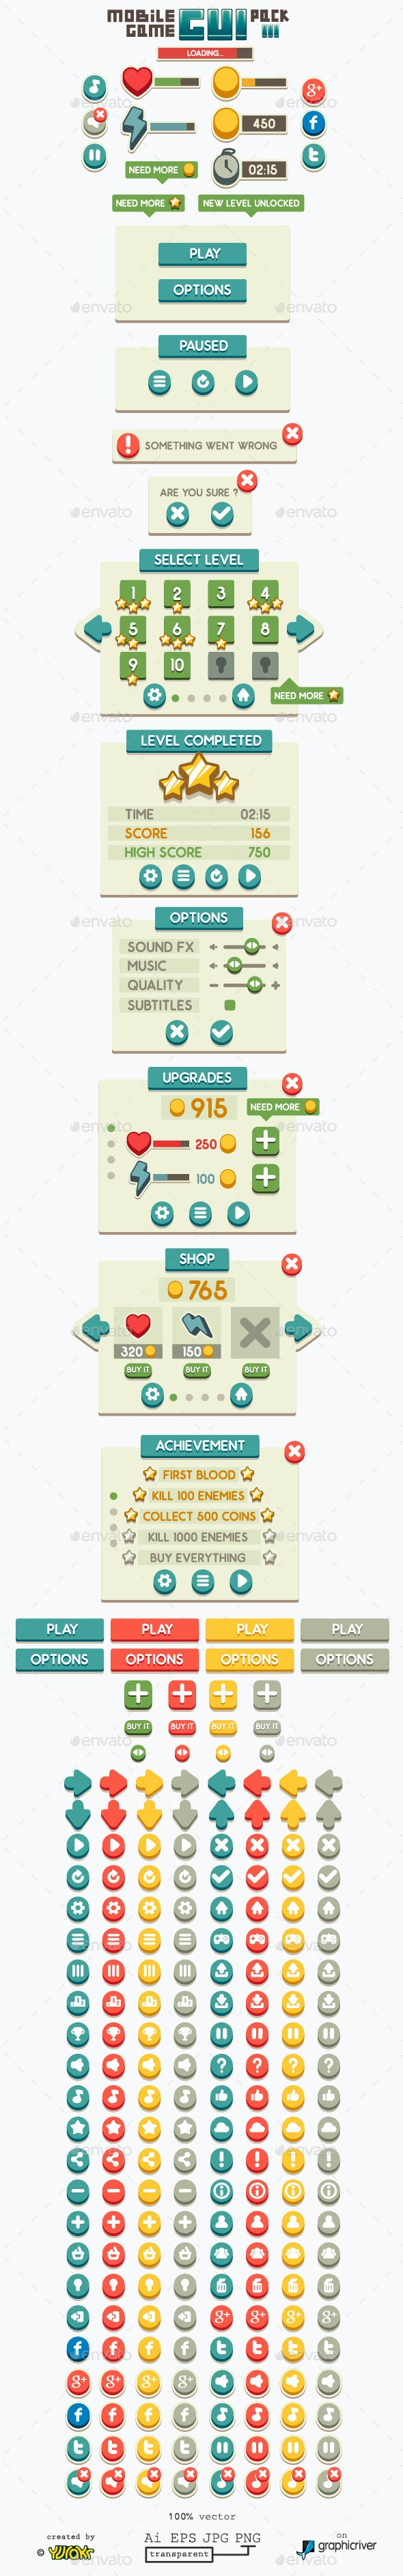 Mobile Game GUI Pack 3 - User Interfaces Game Assets